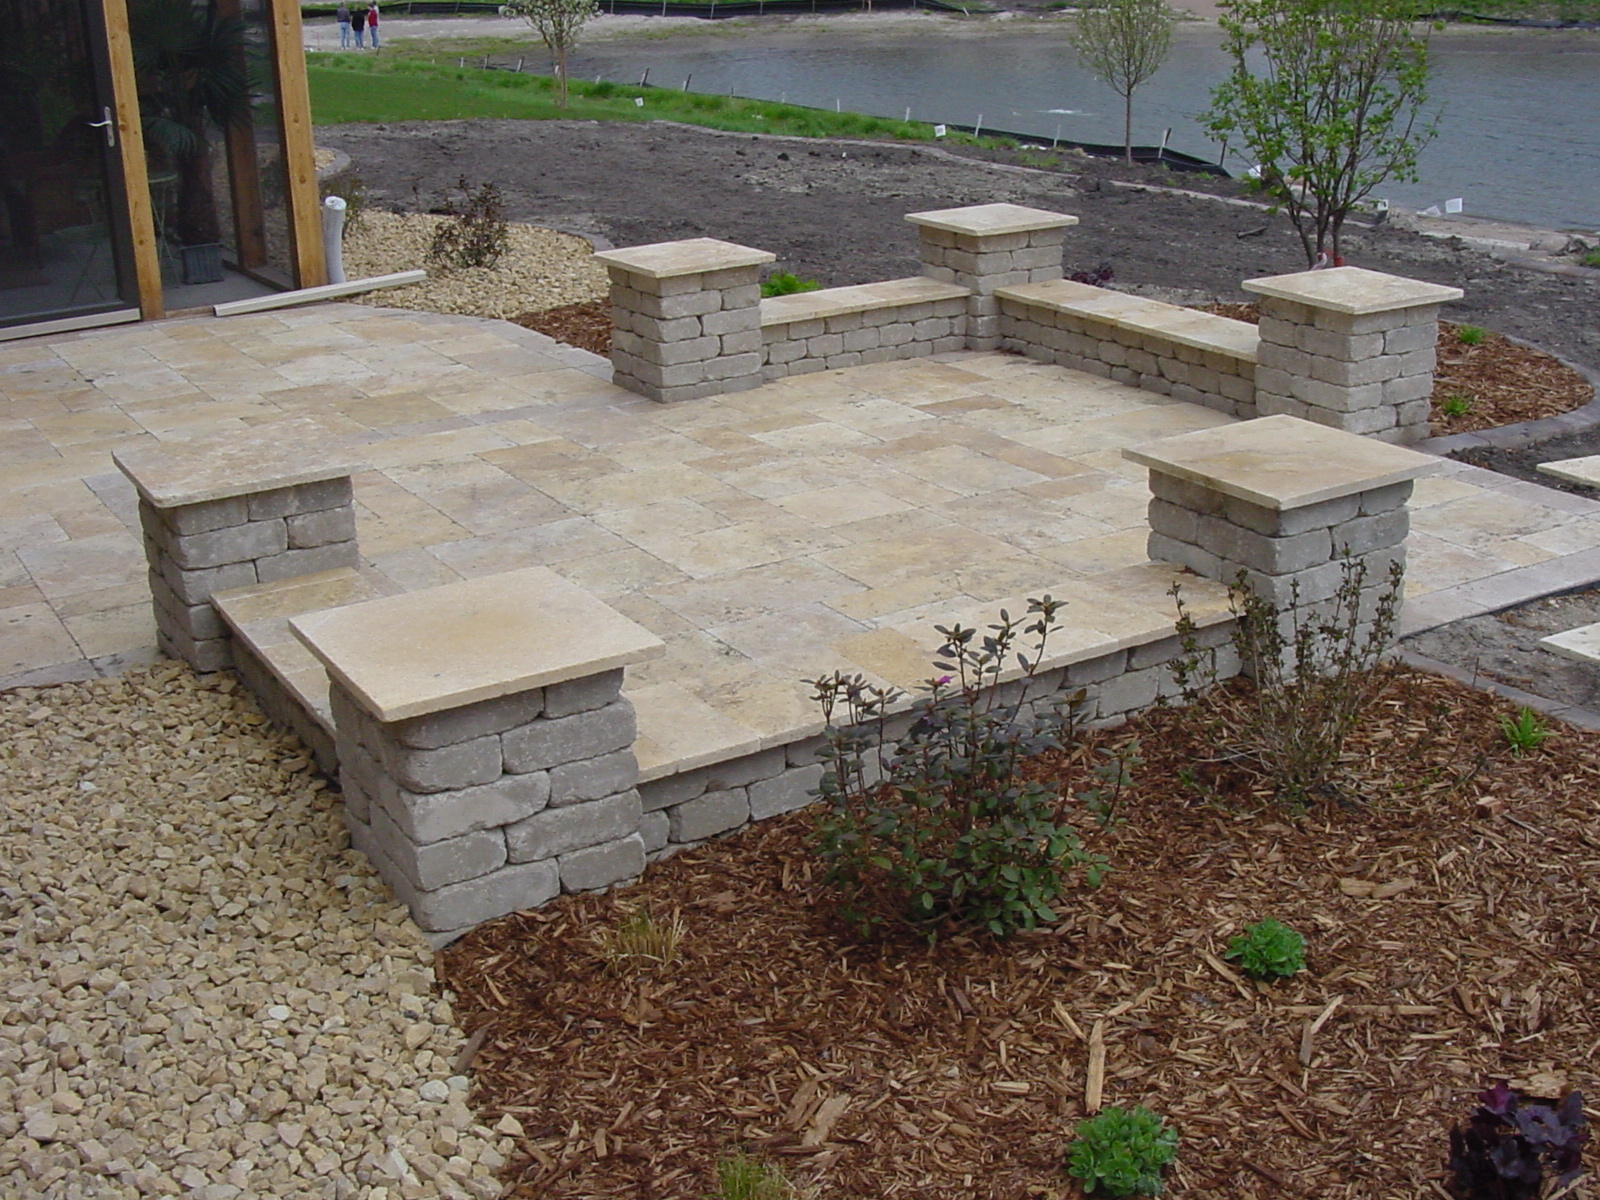 Flagstone Patio With Stone : Minneapolis landscape brick and stone patio design ideas